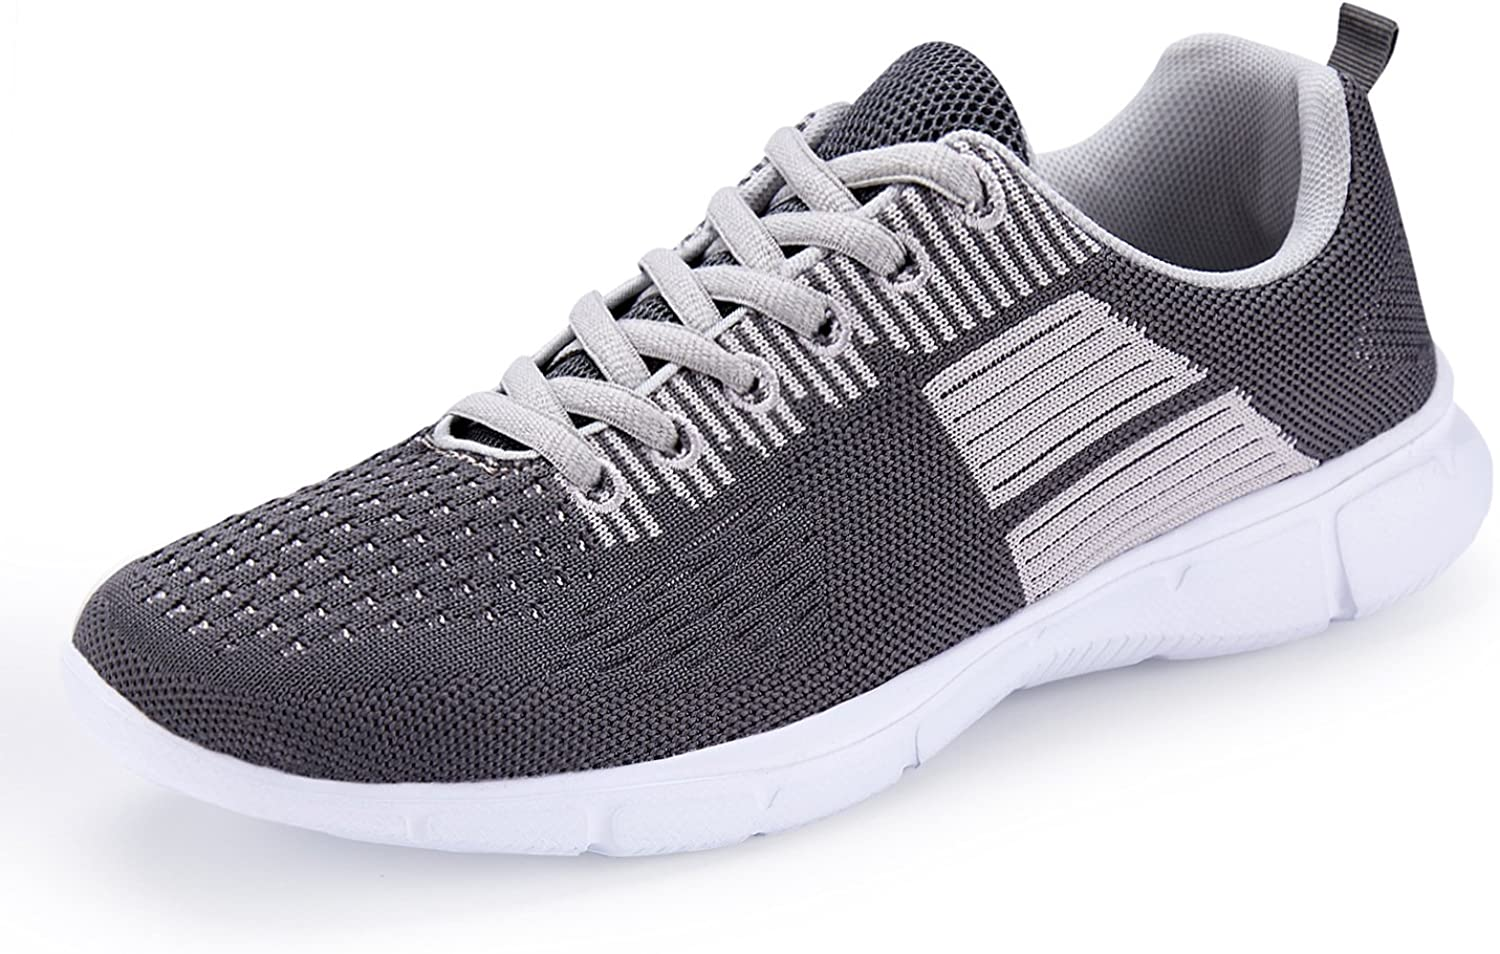 The Fall of New Men's Outdoor Sports Casual shoes Fly Fabric